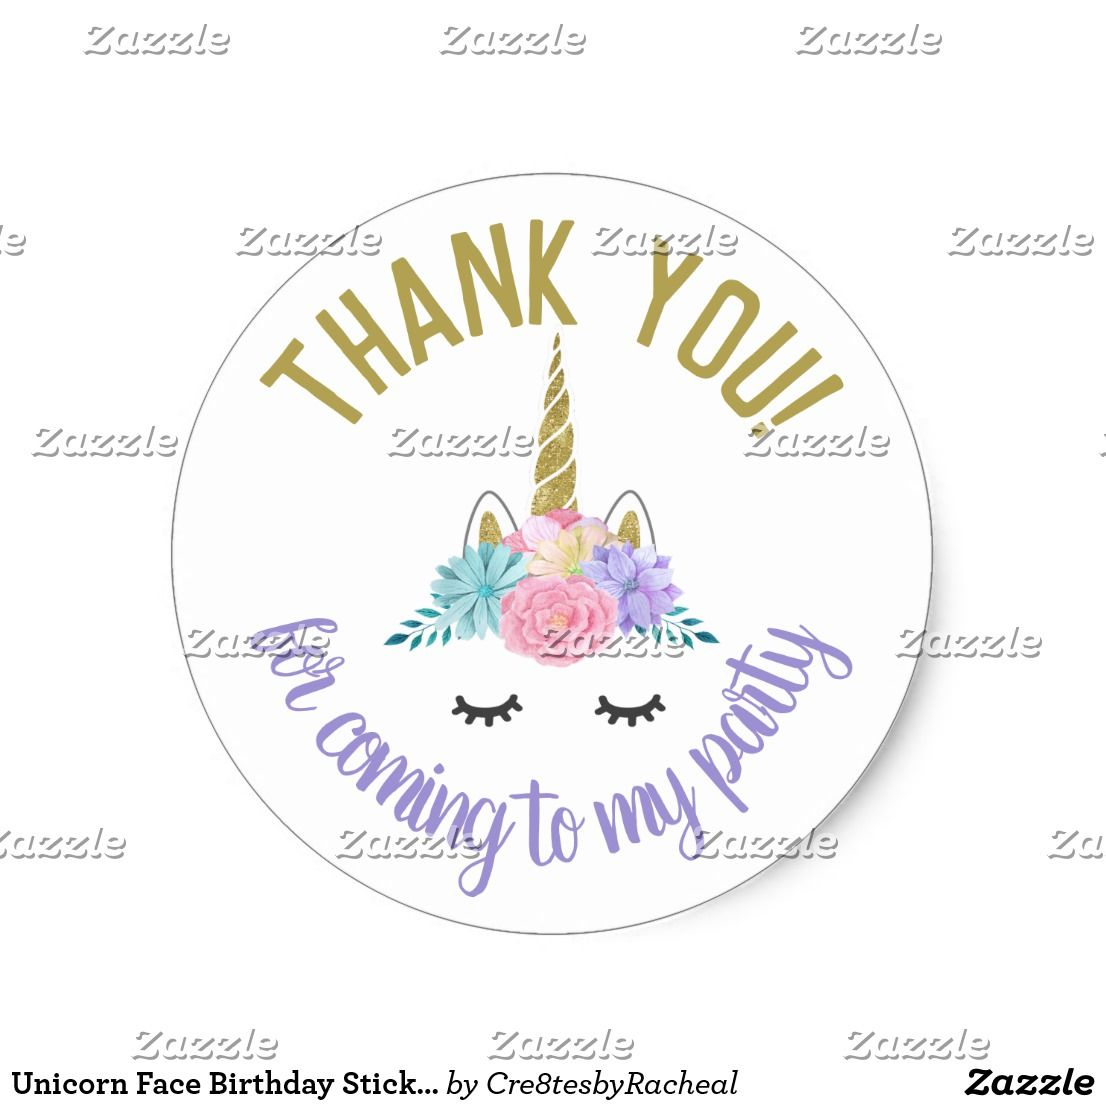 Unicorn face birthday stickers round labels unicorn face unicorn face birthday stickers round labels ccuart Gallery